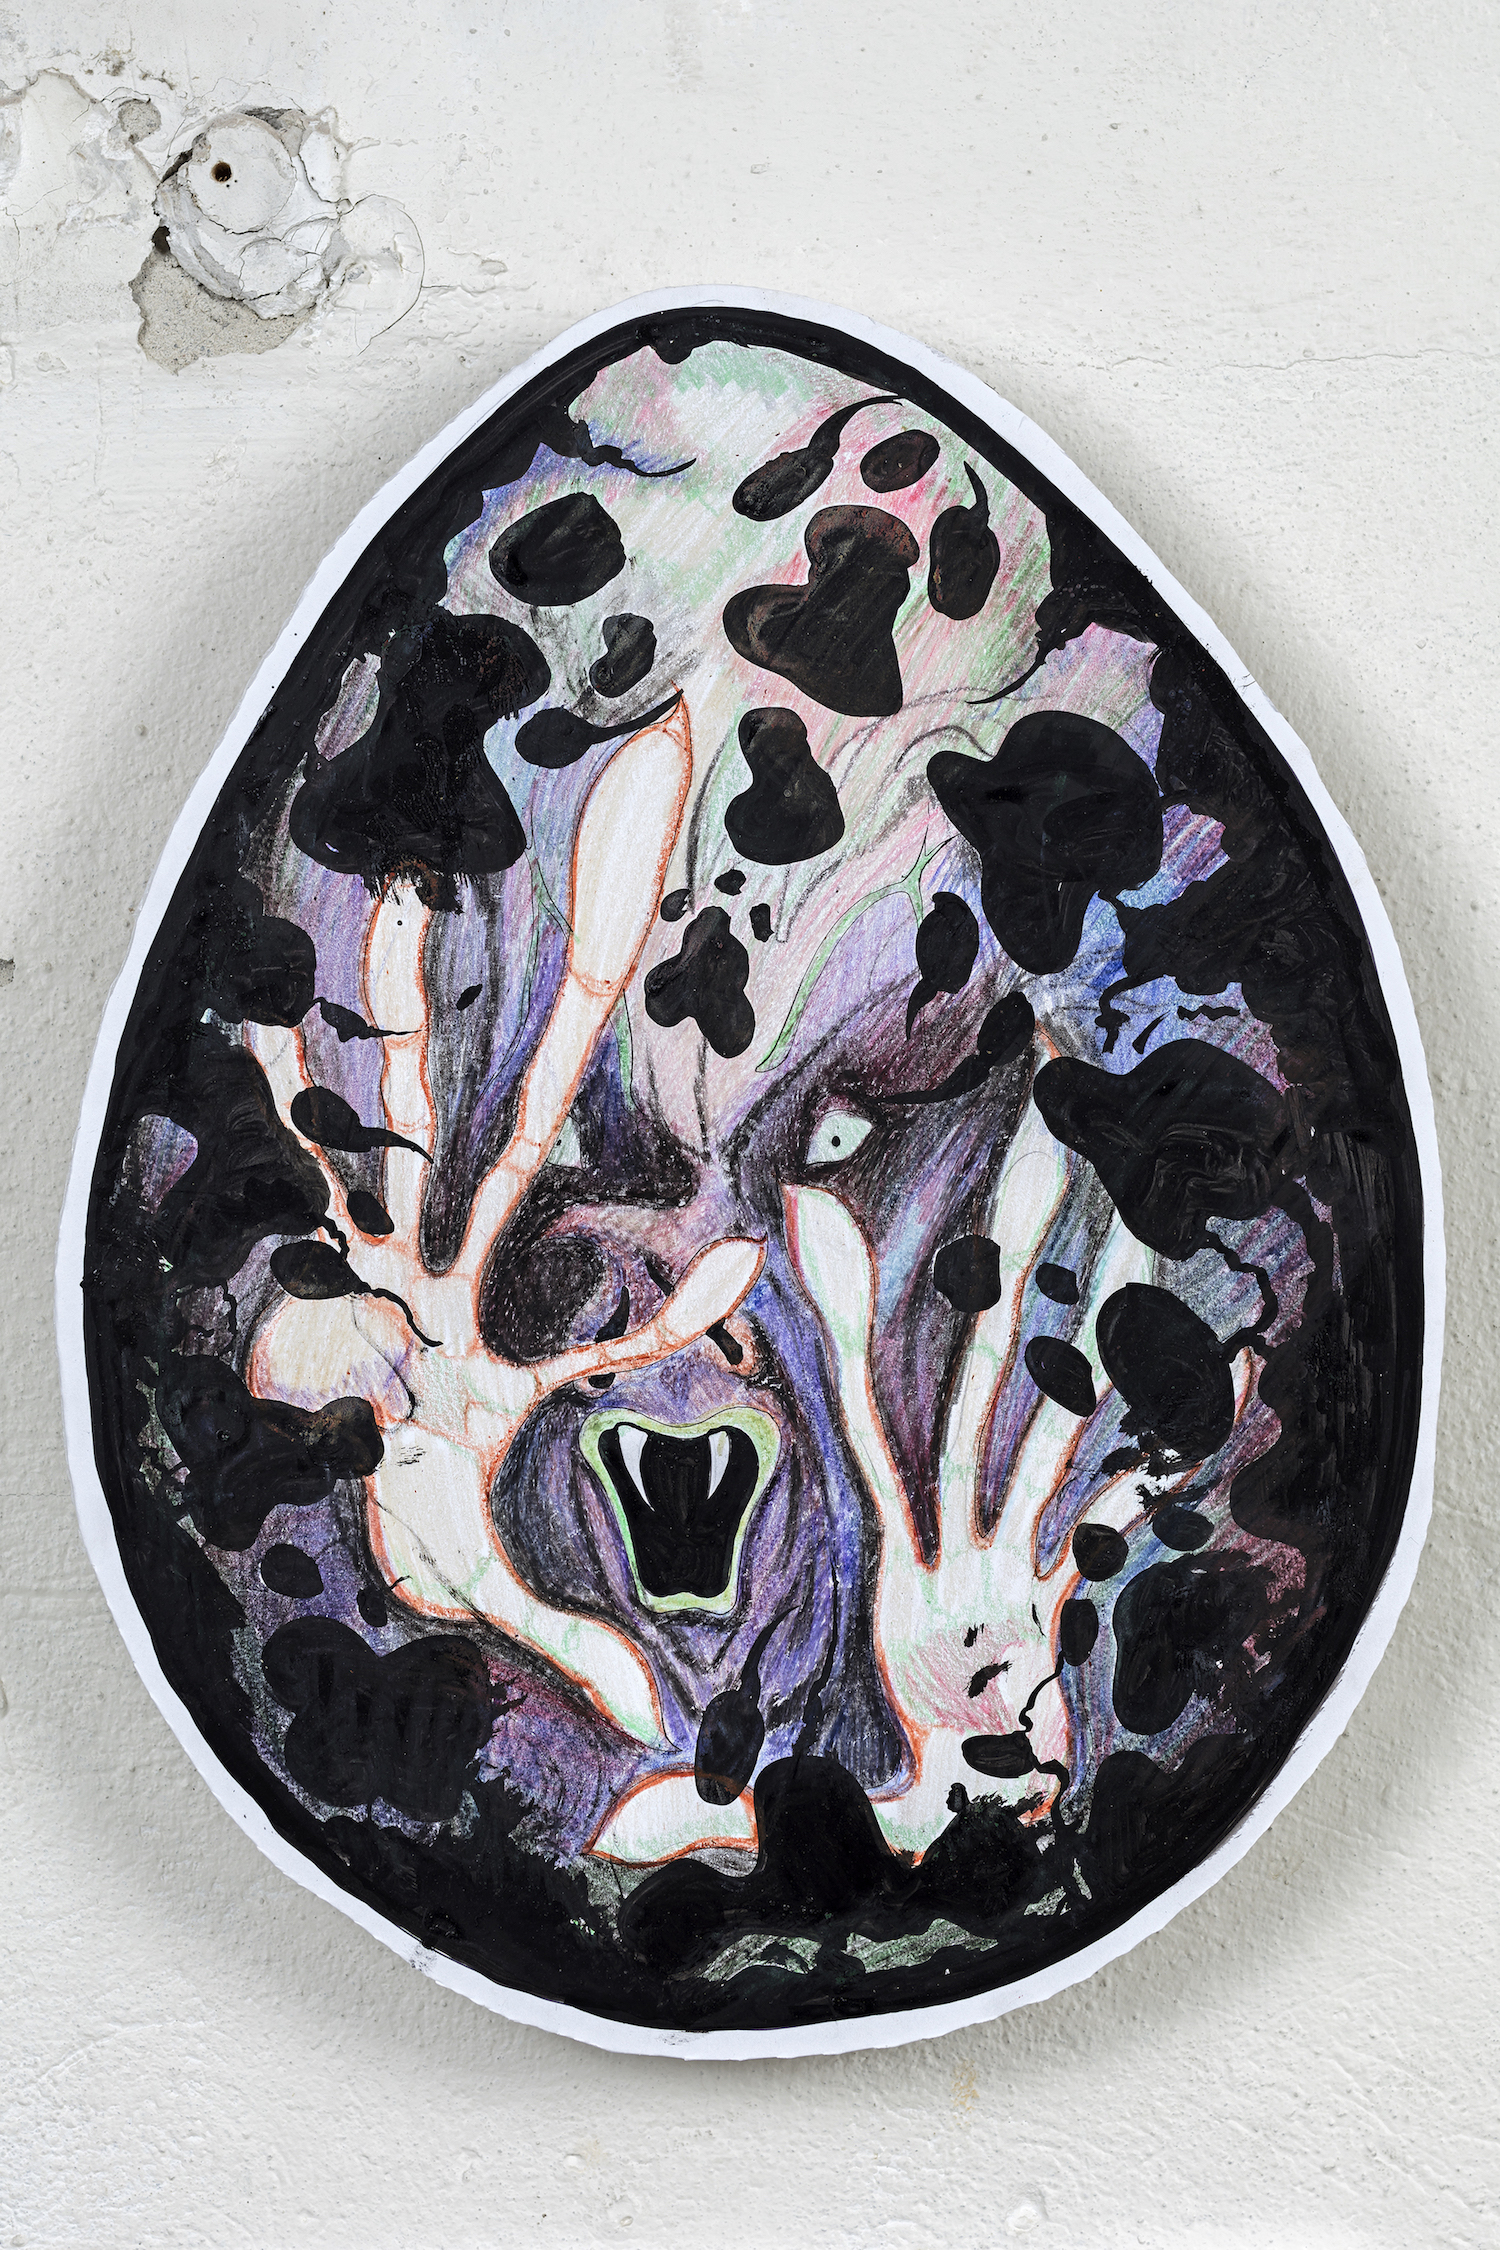 Will Sheldon Creature in an egg 2017, Foamcore, ink, crayon, size variable